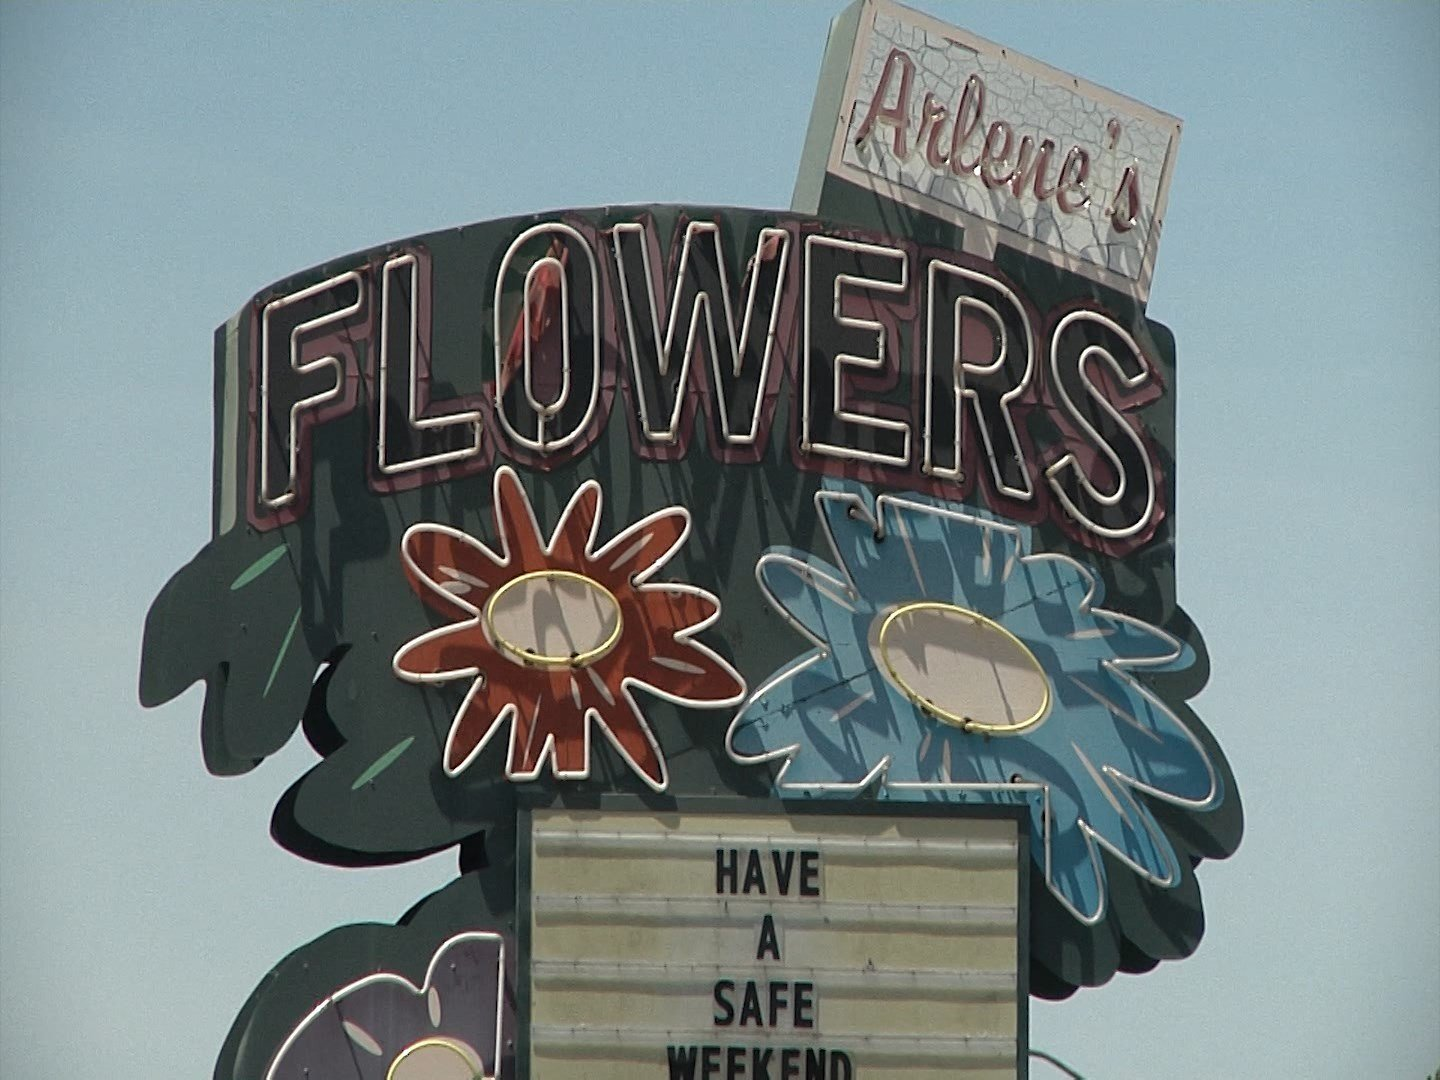 Richland floral shop owner wants US Supreme Court to review discrimination ruling